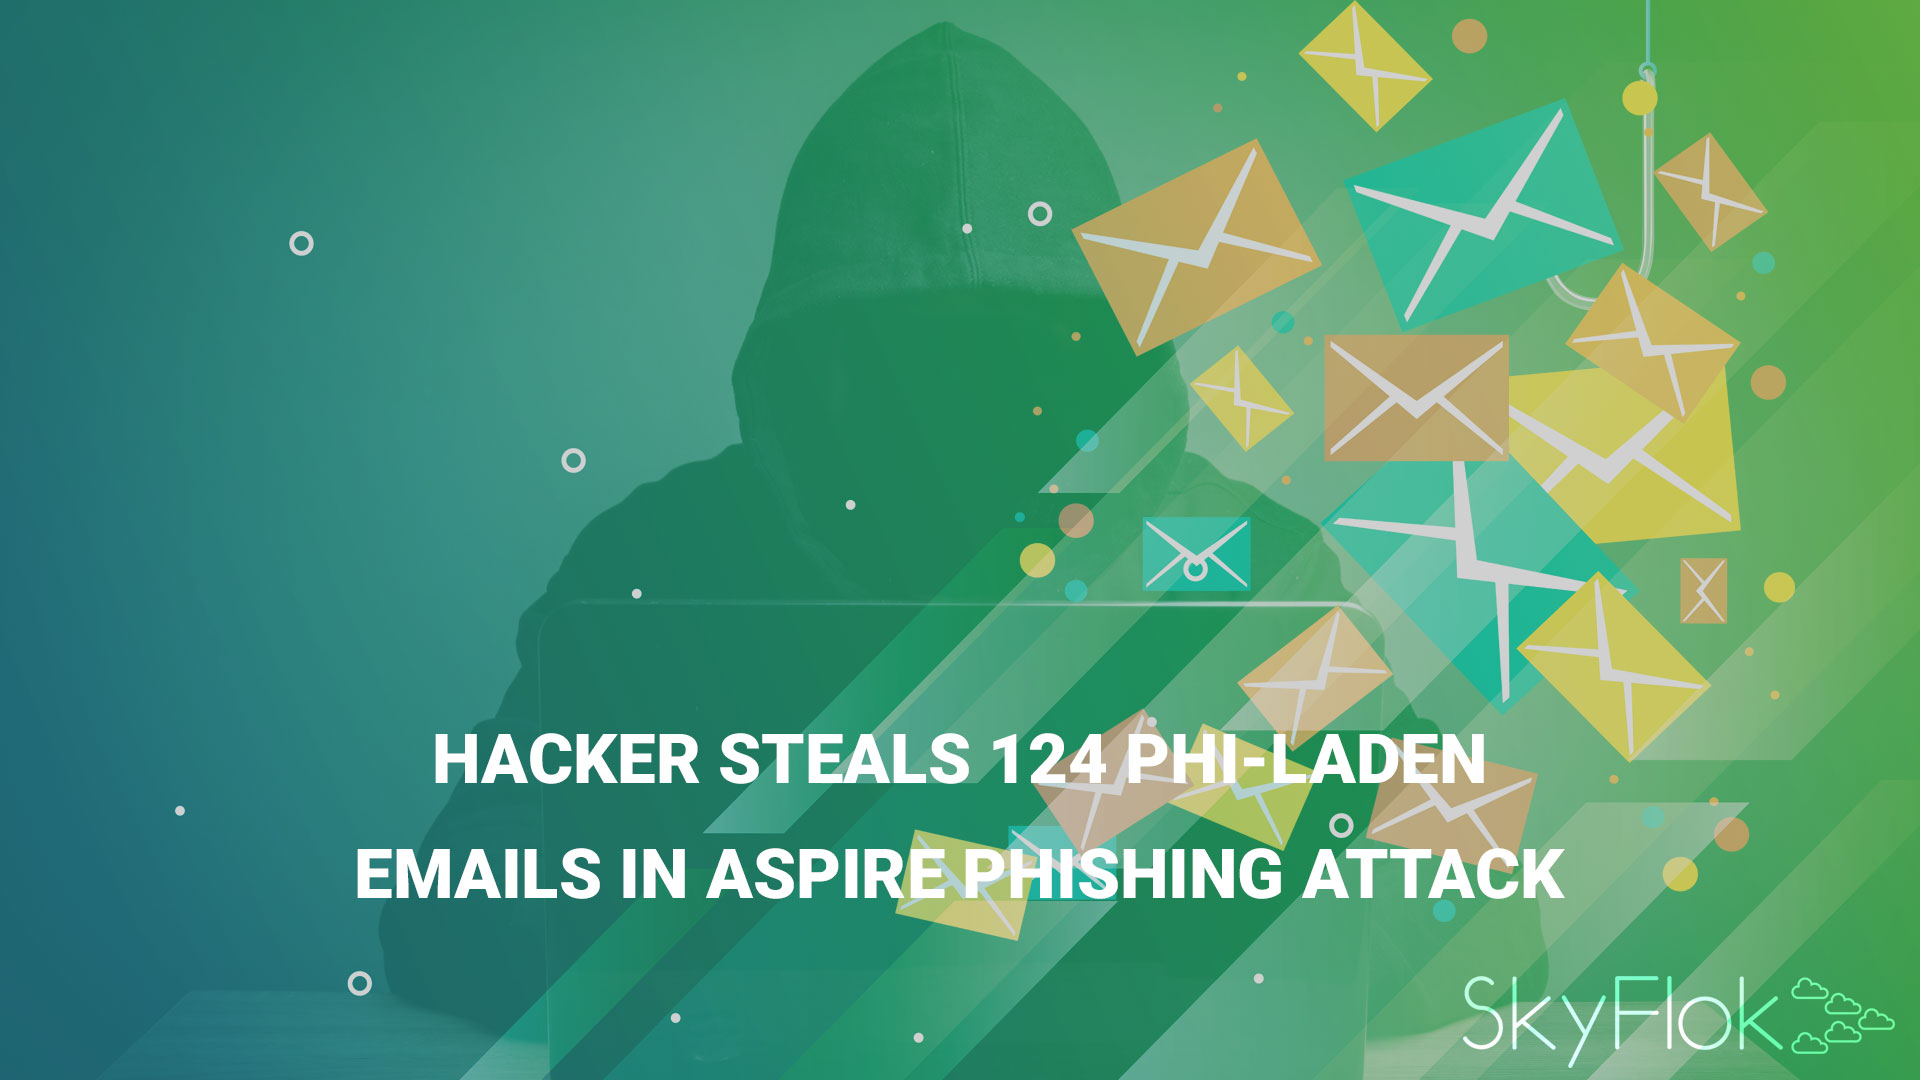 Hacker Steals 124 PHI-Laden Emails in Aspire Phishing Attack